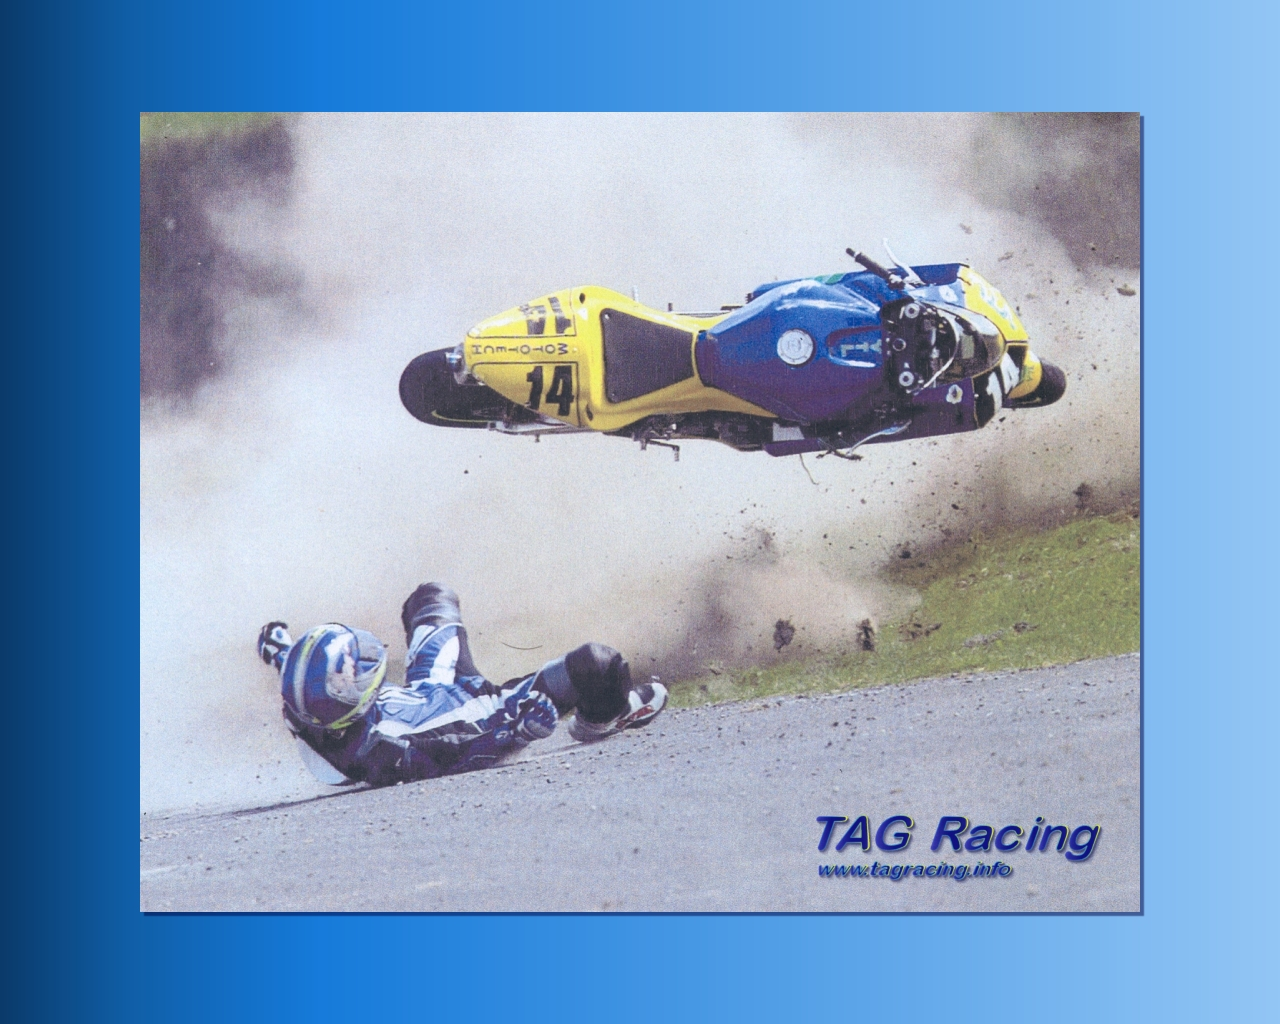 TAG Racing Wallpaper - Lovers Part (1280 by 1024 Pixel)